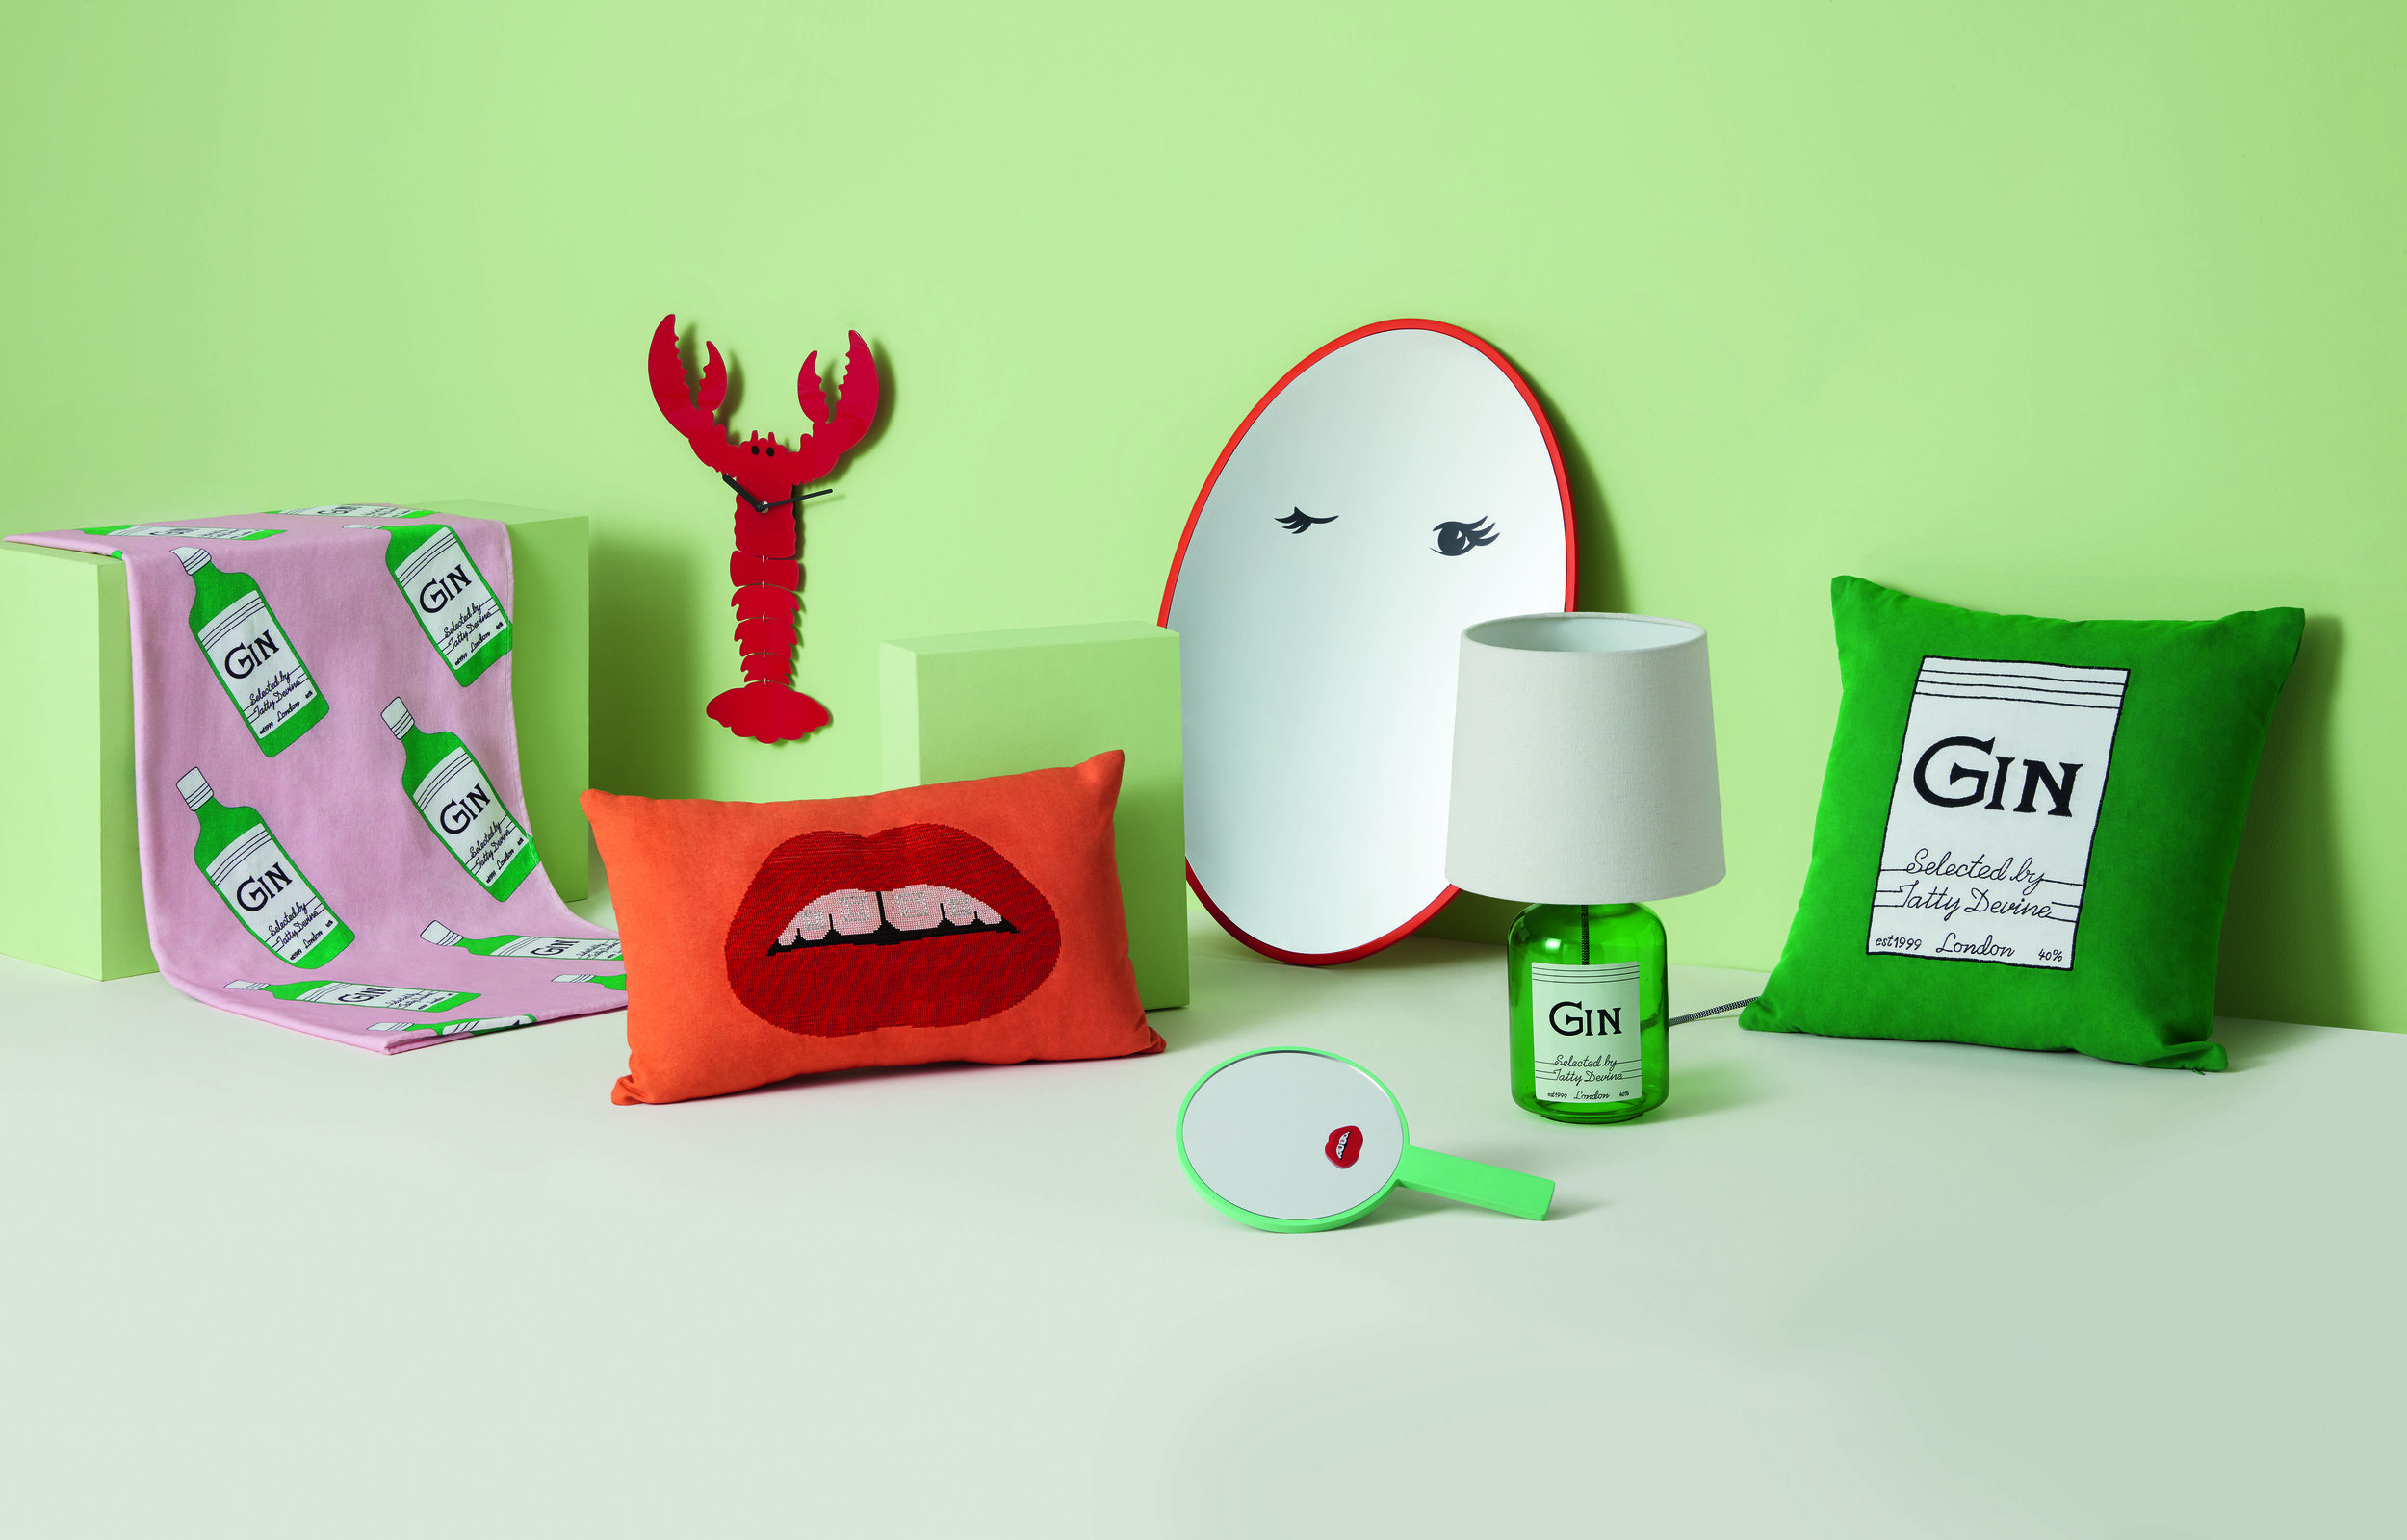 Art direction for a capsule collection between collaborating brands Tatty Devine and Made.com